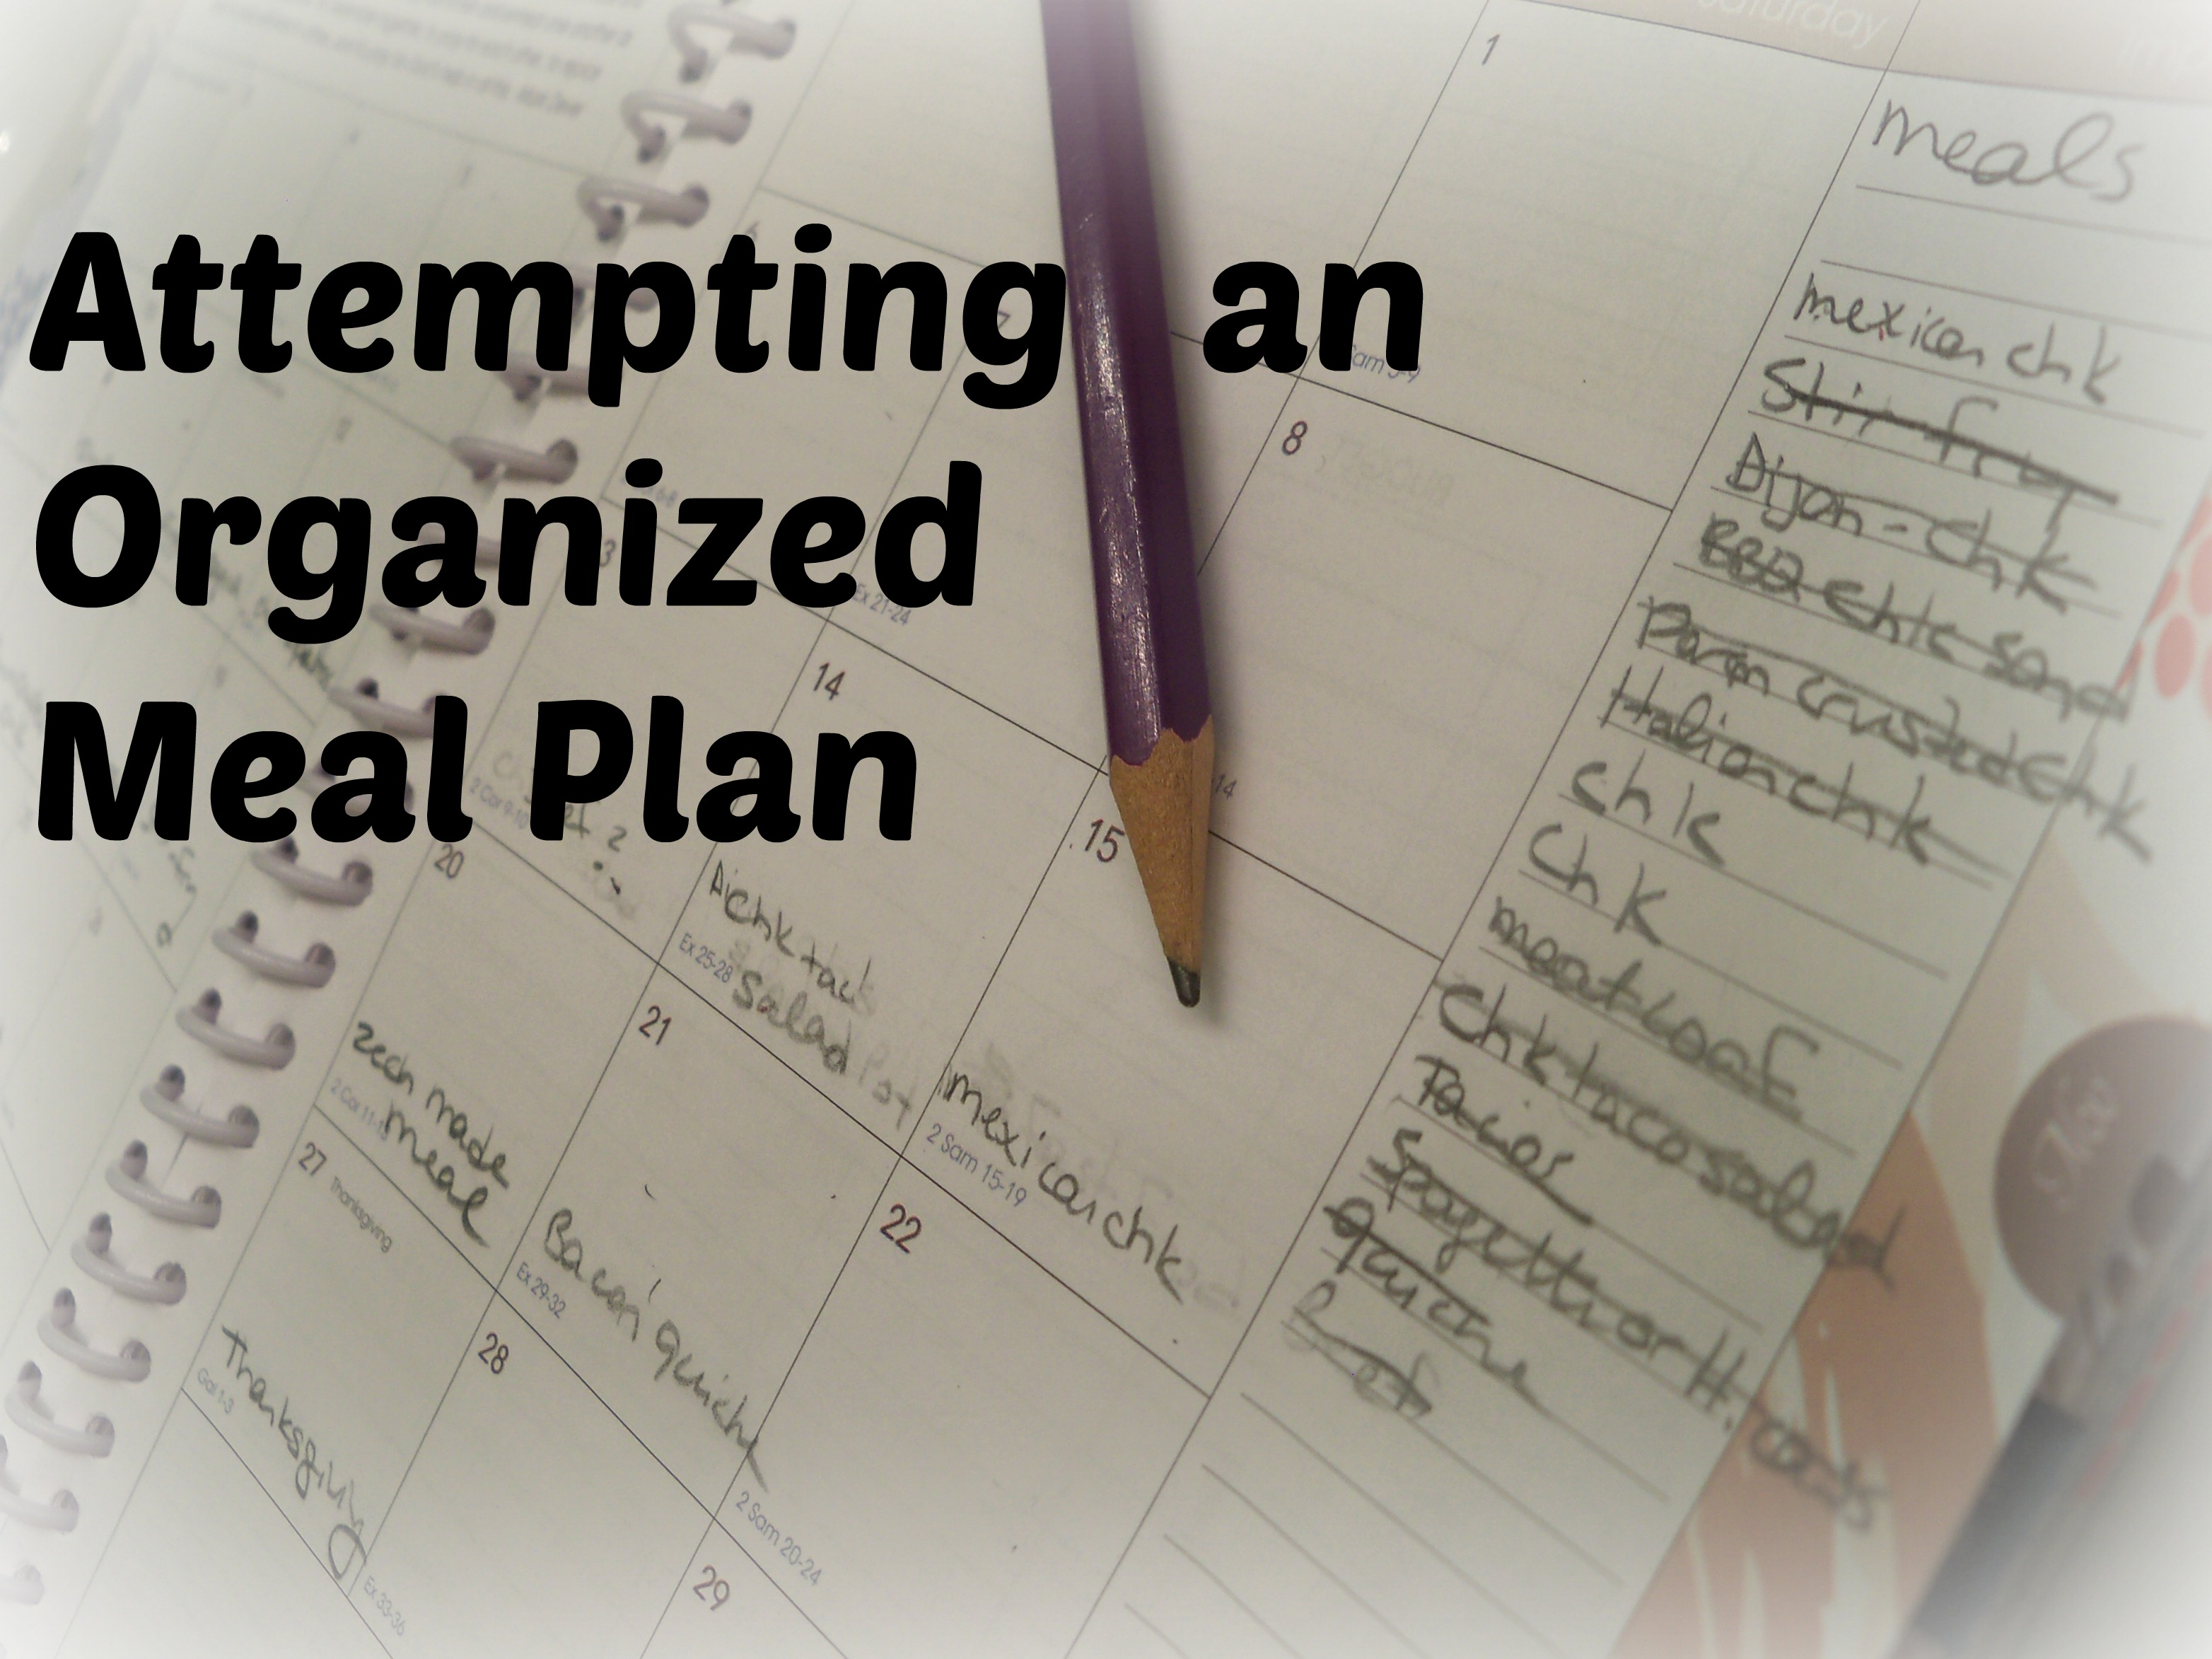 Attempting an Organized Meal Plan